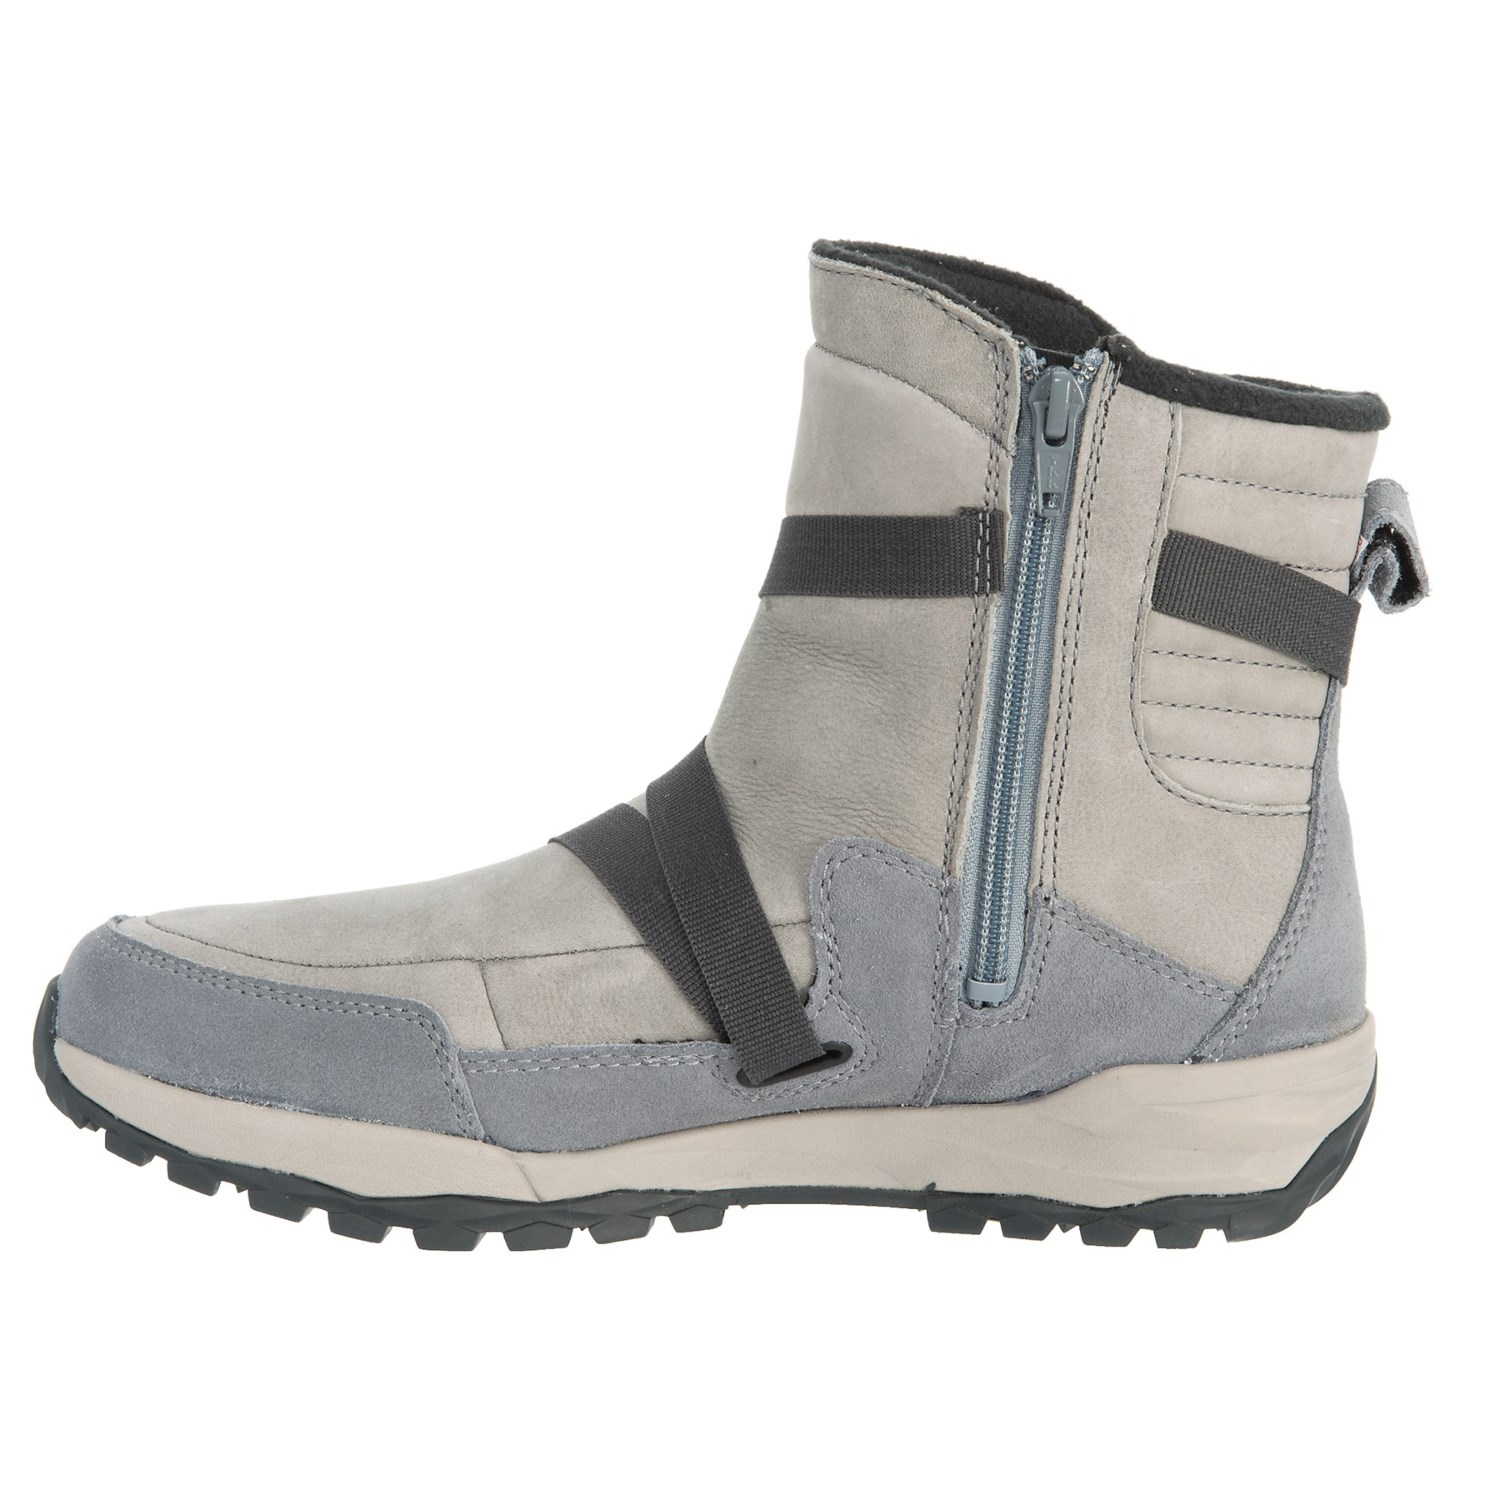 23fca40018978 Merrell Insulated Winter Boots - Best Picture Of Boot Imageco.Org